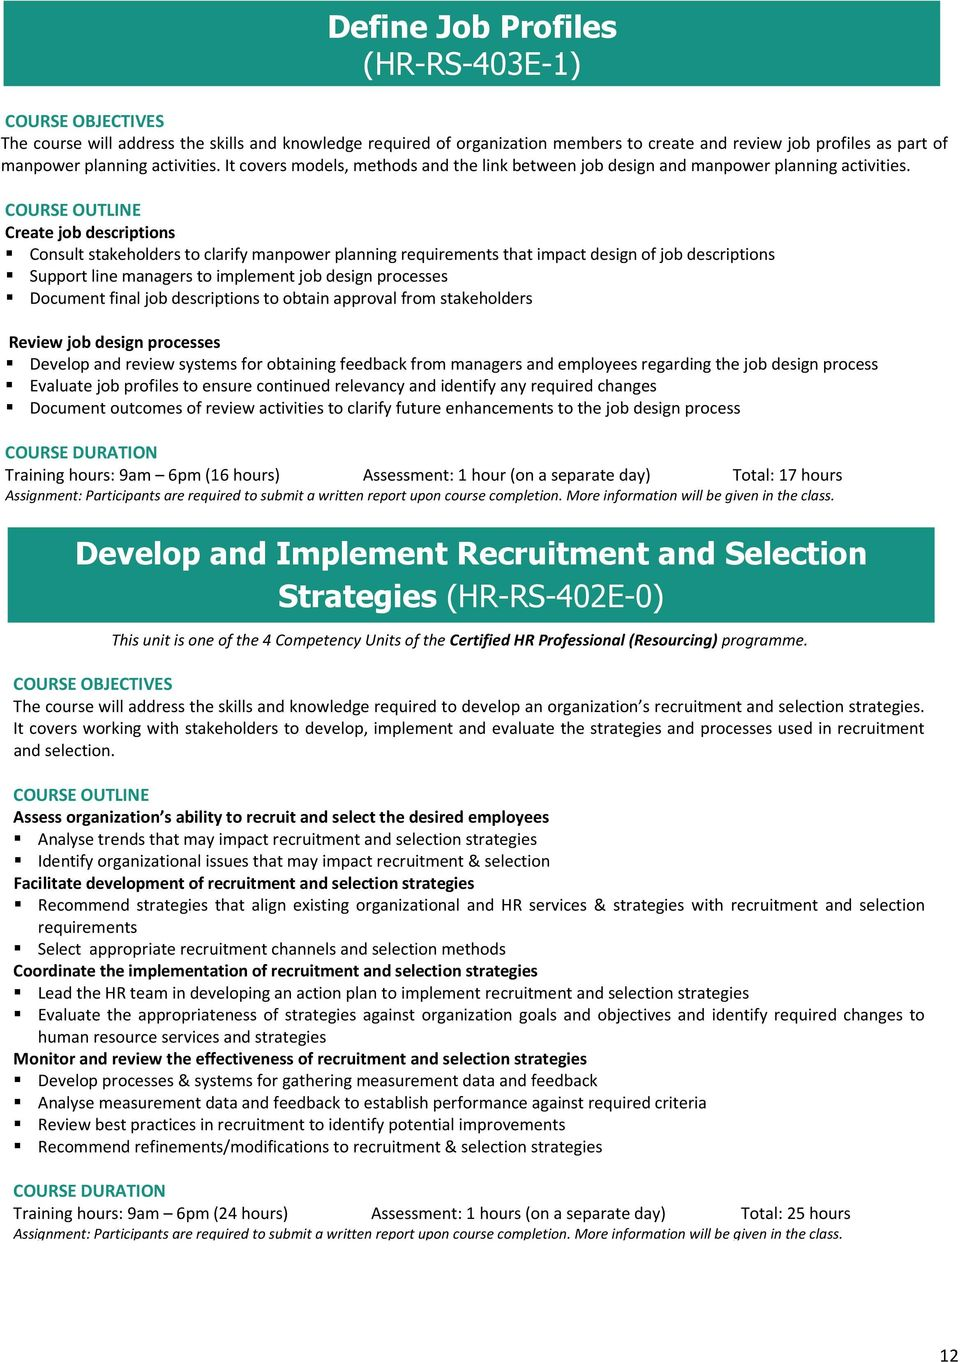 Create job descriptions Consult stakeholders to clarify manpower planning requirements that impact design of job descriptions Support line managers to implement job design processes Document final